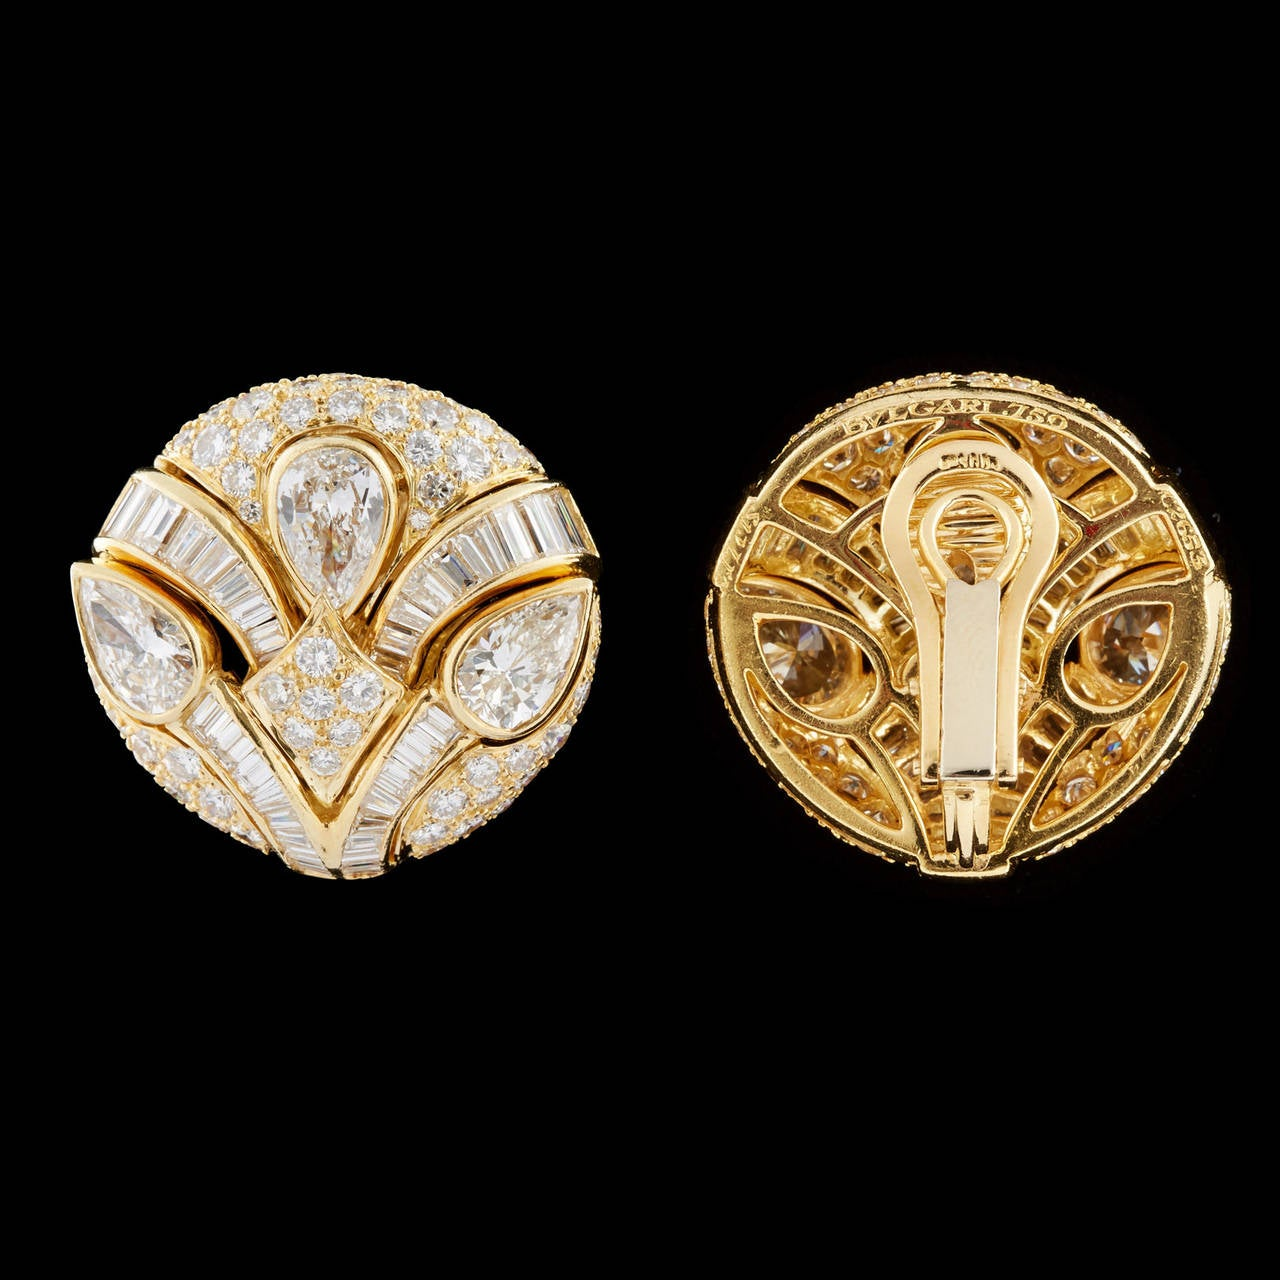 Impressive Bulgari Diamond Button Earrings 4